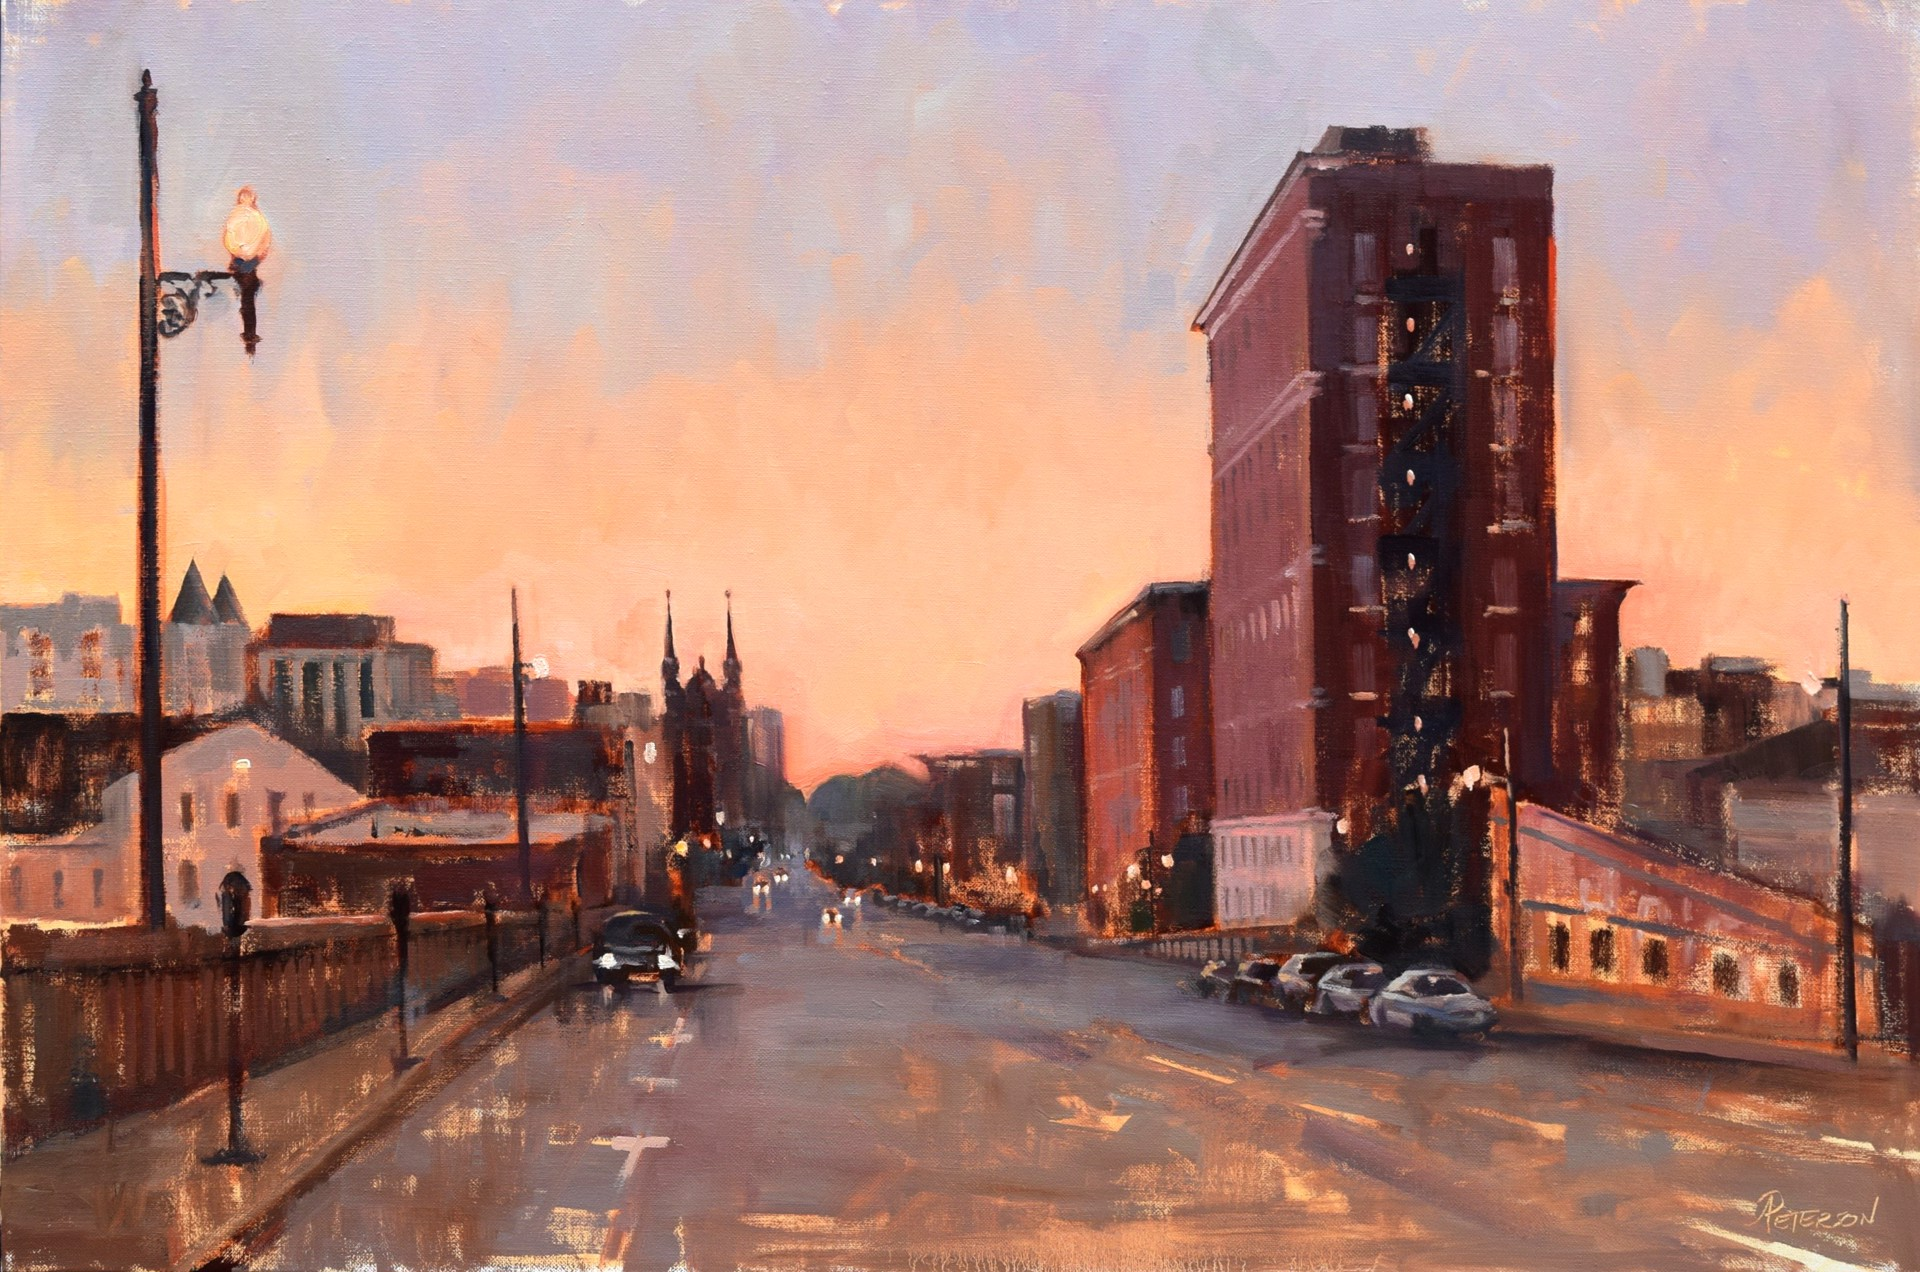 Brick and Mortar Sunset (22nd Street Birmingham) by Amy R. Peterson